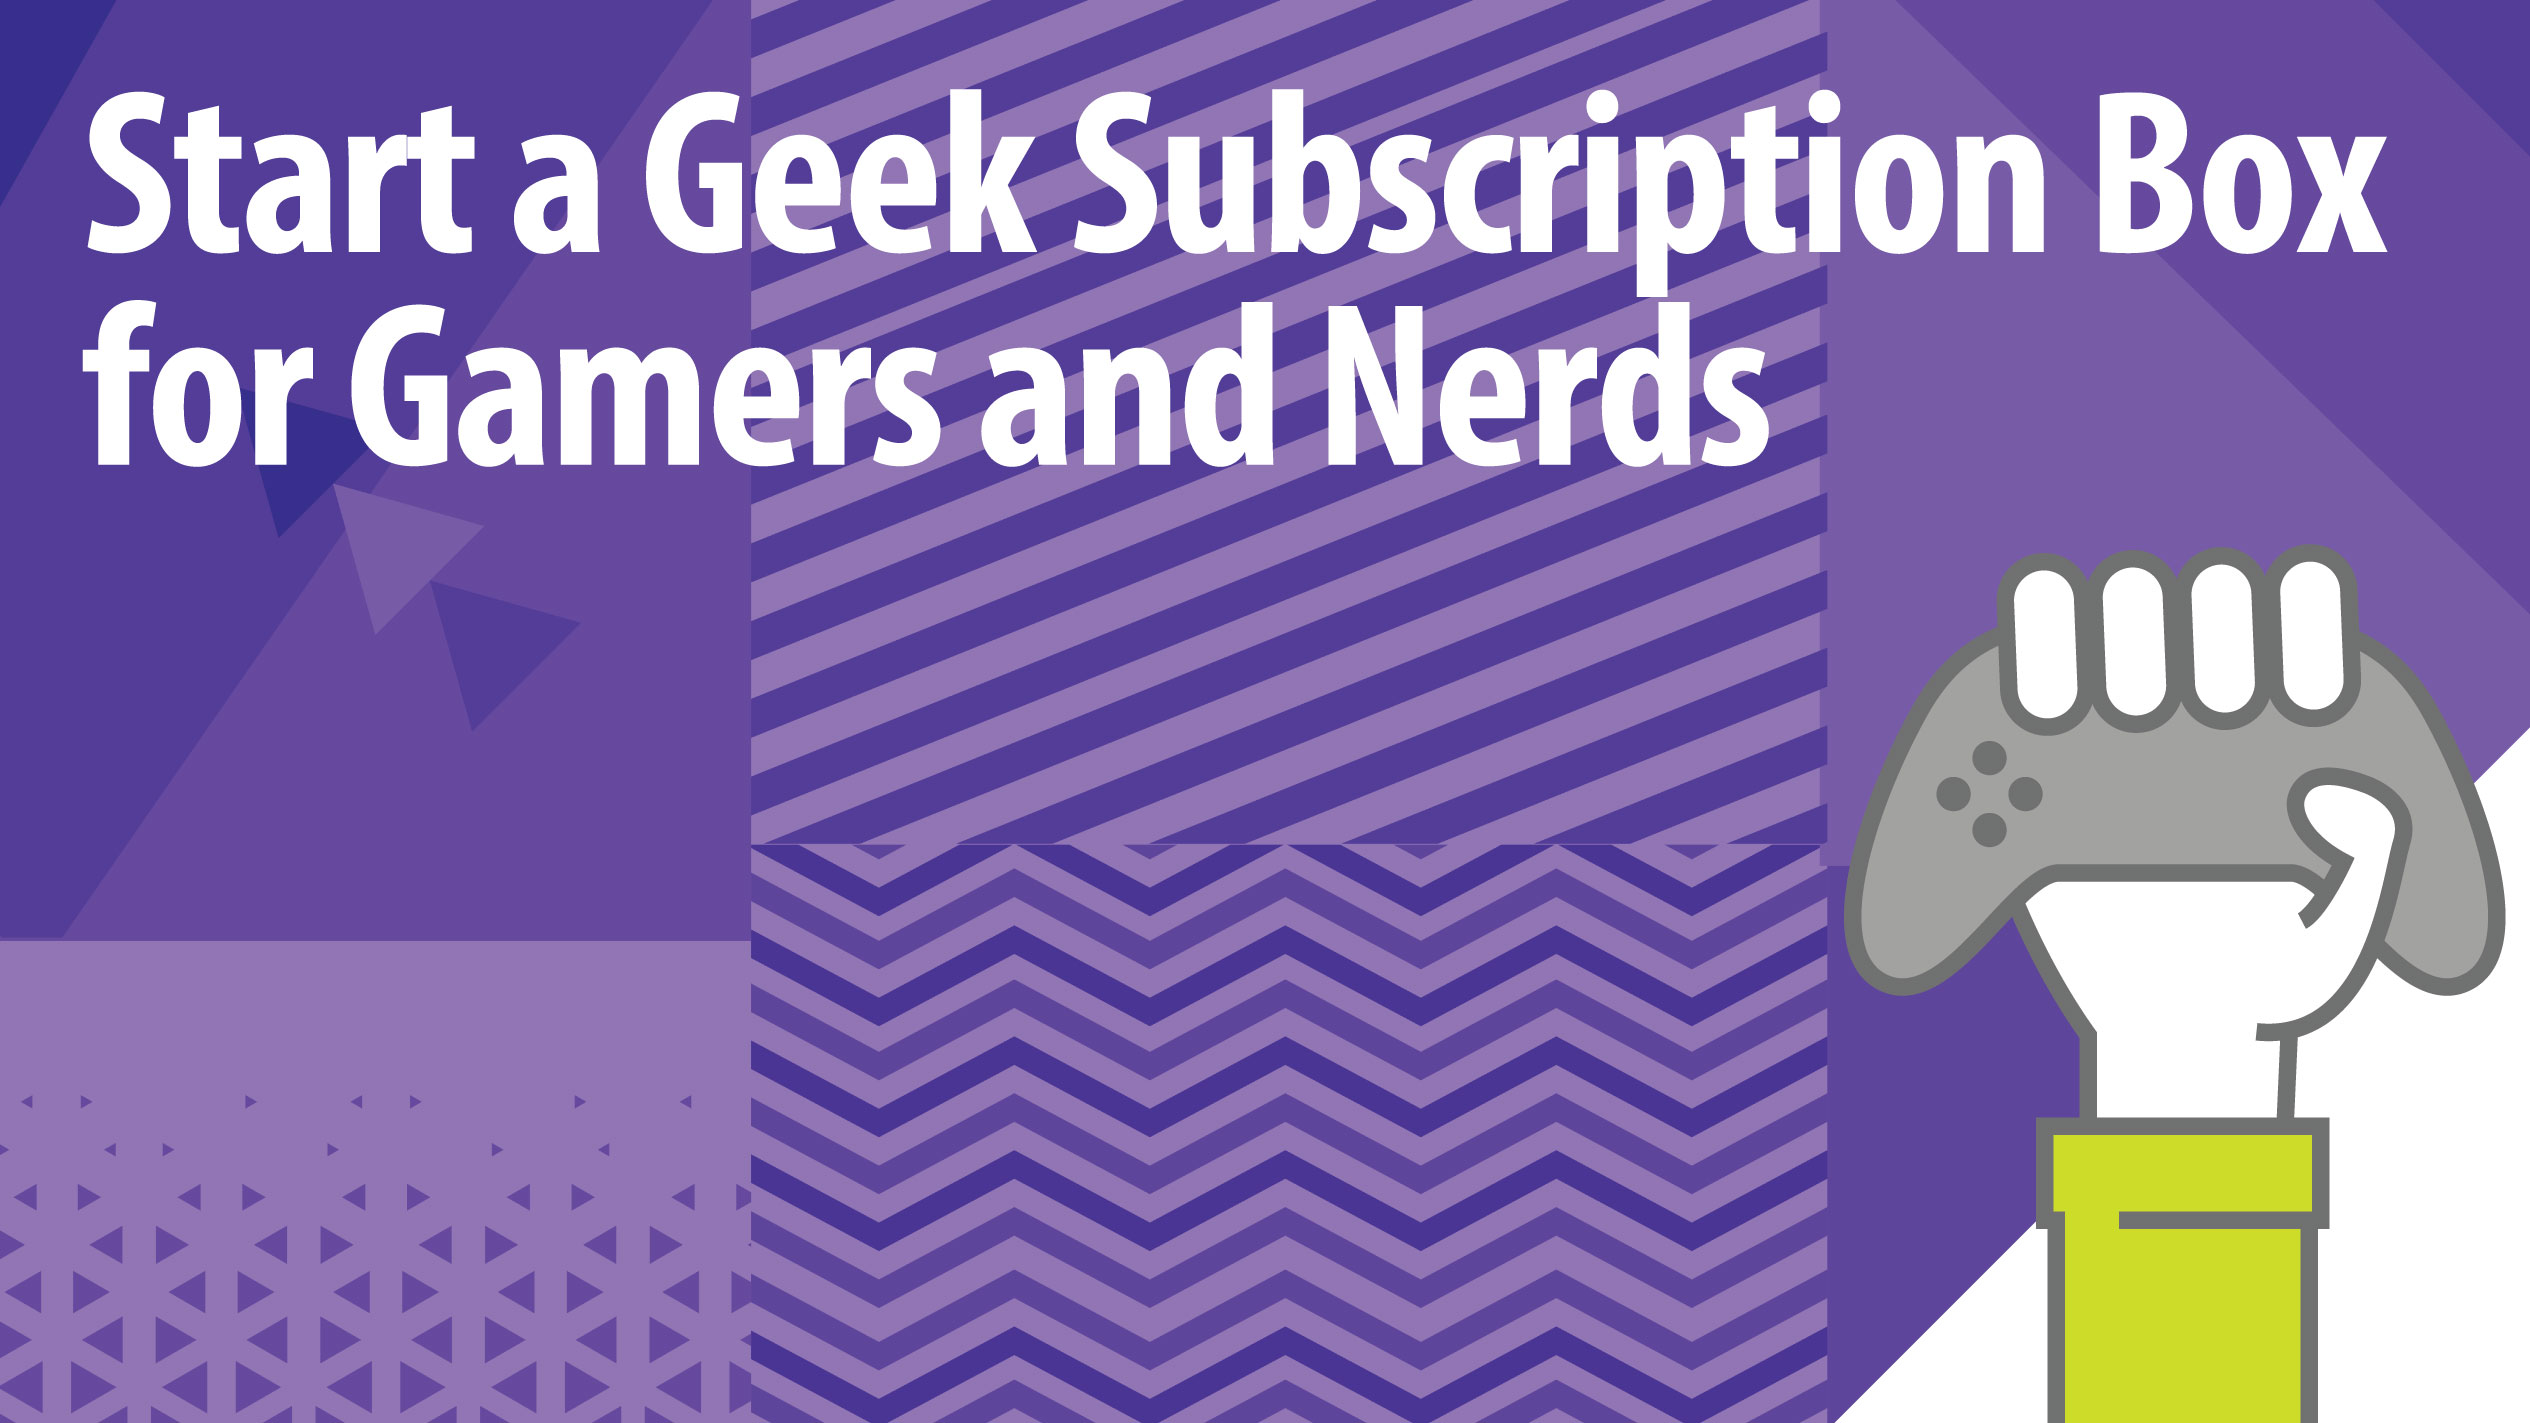 Start a Geek Subscription Box for Gamers and Nerds